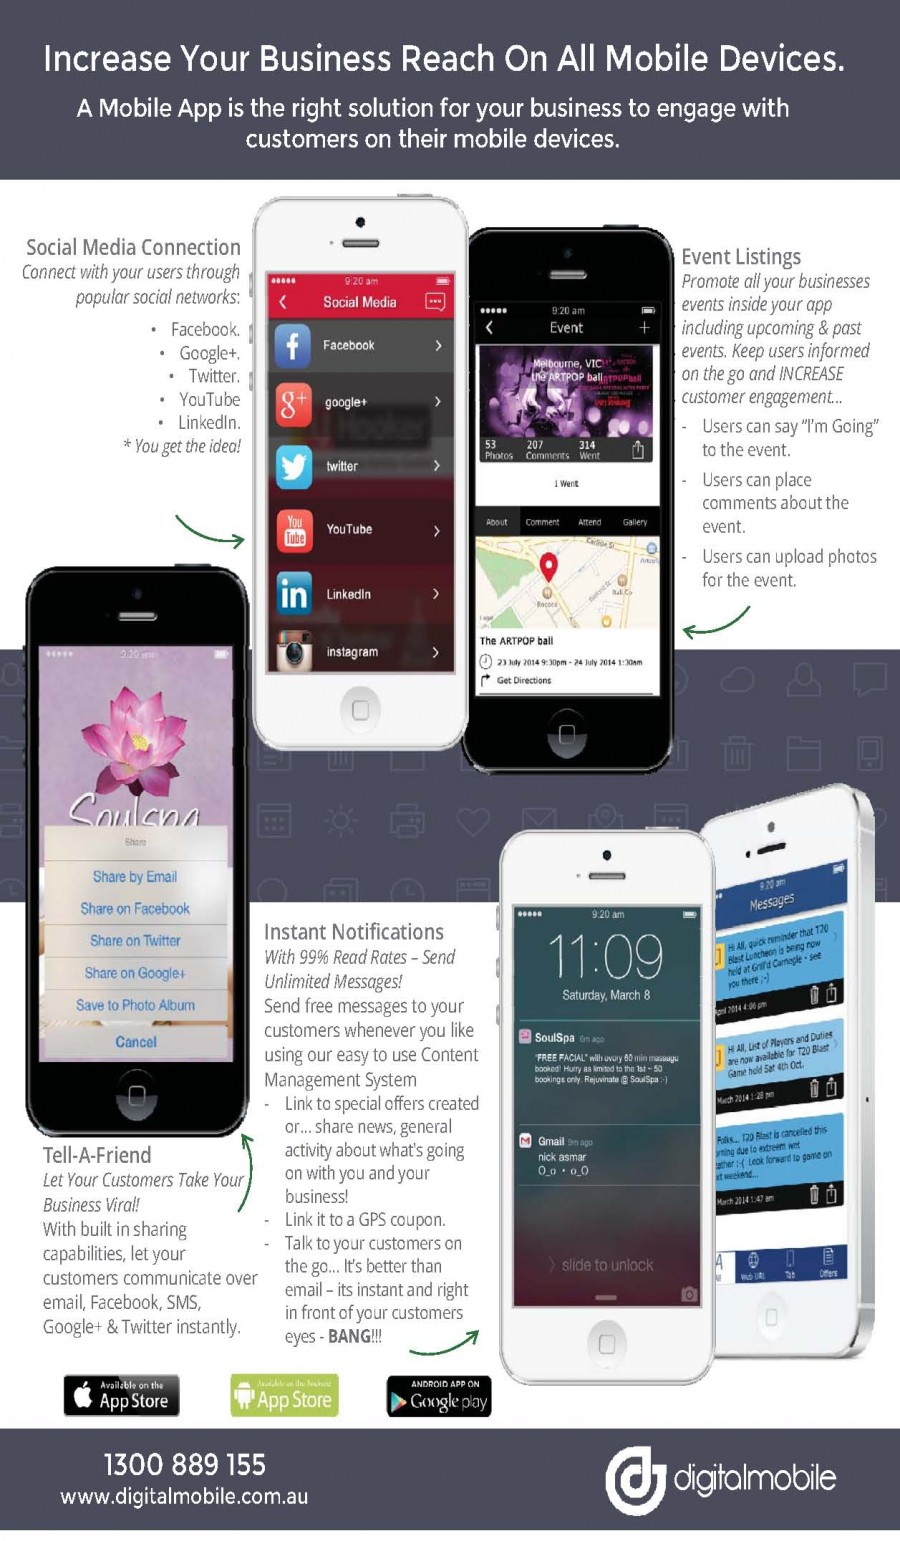 digitalmobile_Mobile Apps2014_ (1)_Page_3